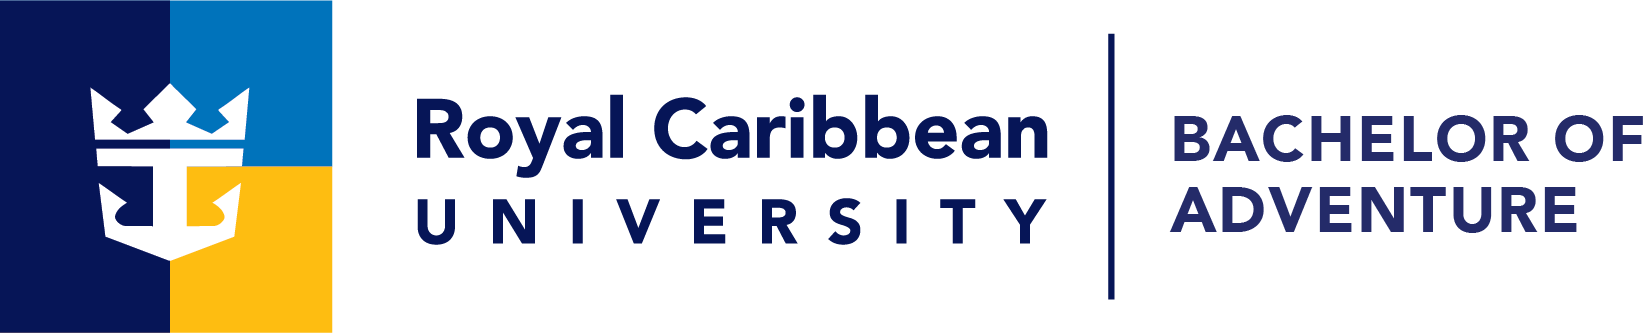 Royal Caribbean University